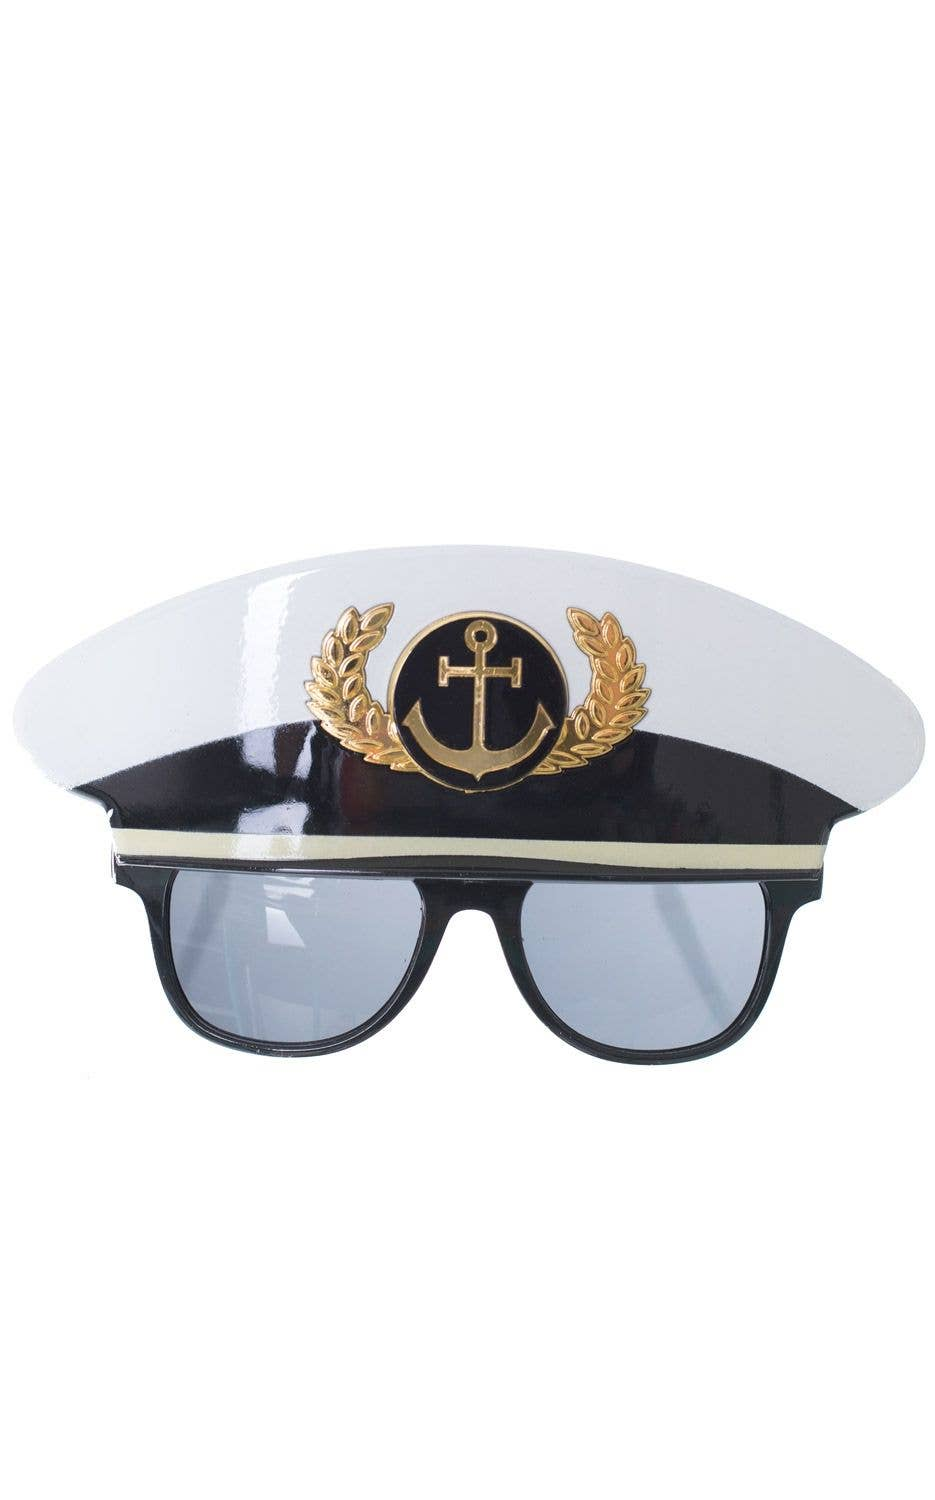 008dcd19e594e Black And White Crown and Anchor Sailor Hat Glasses